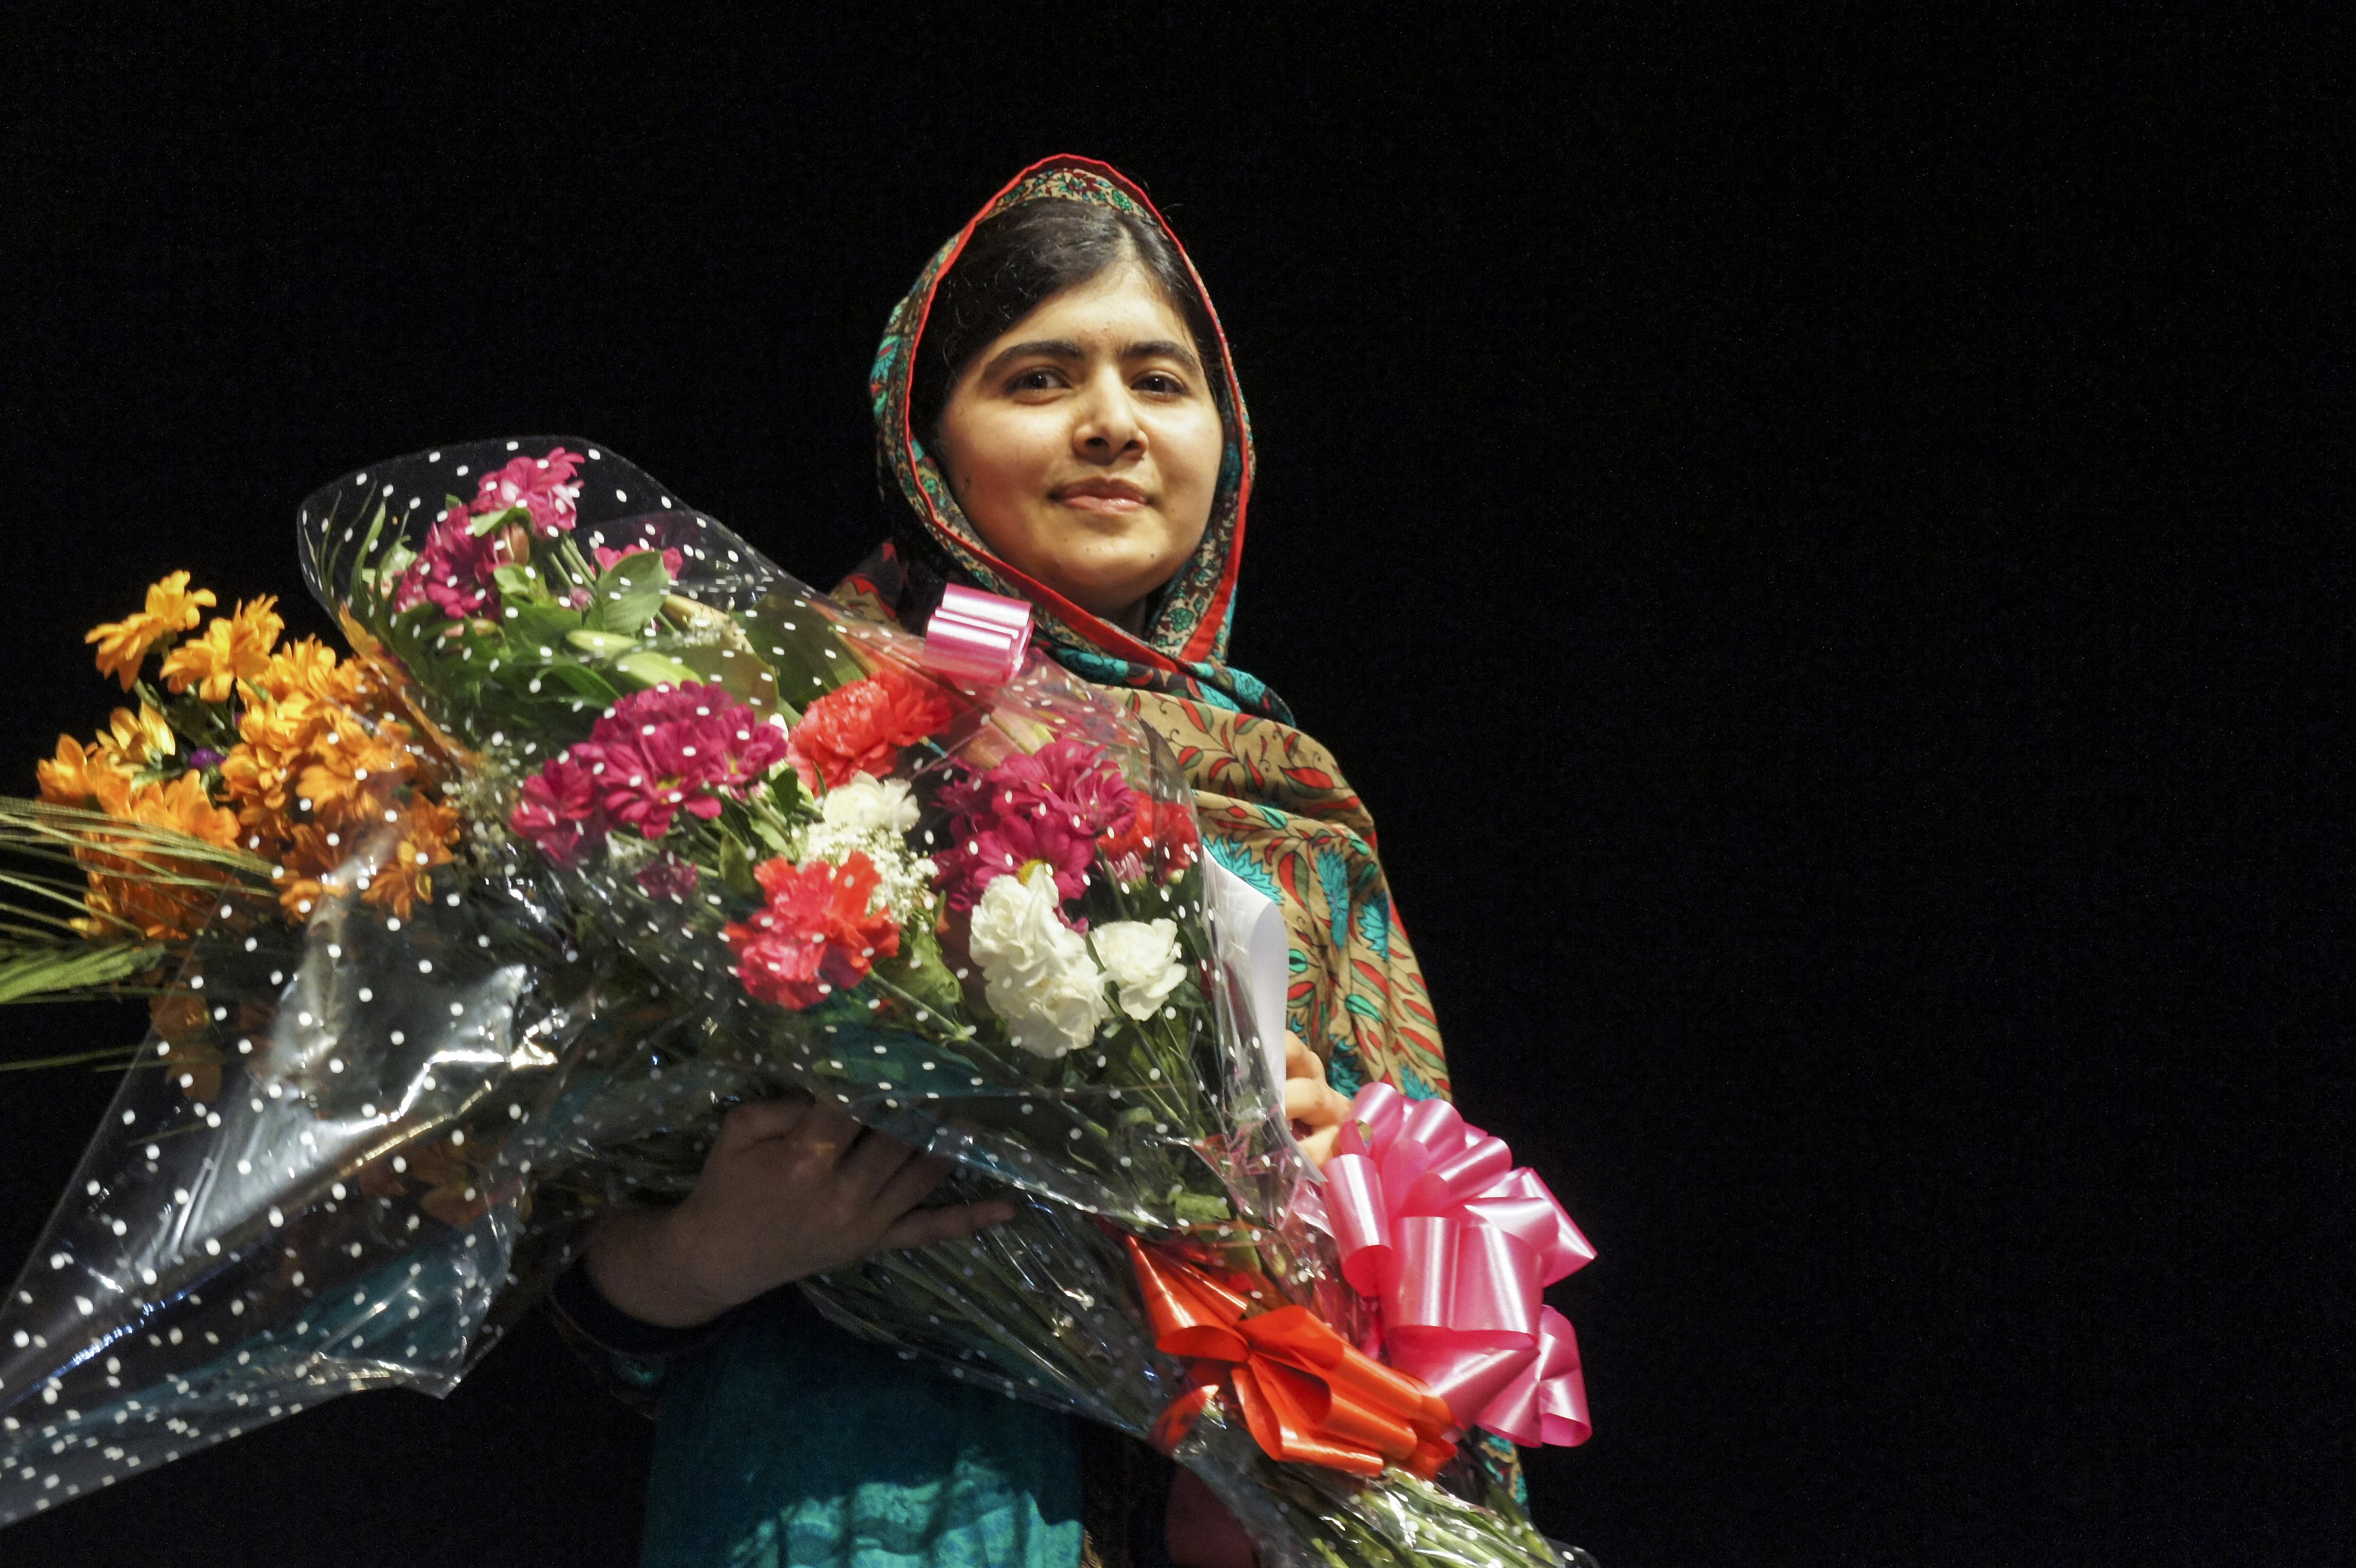 Malala Yousafzai making her Nobel Peace Prize acceptance speech from the Library of Birmingham in October 2014 (Photograph: Adam Yosef)